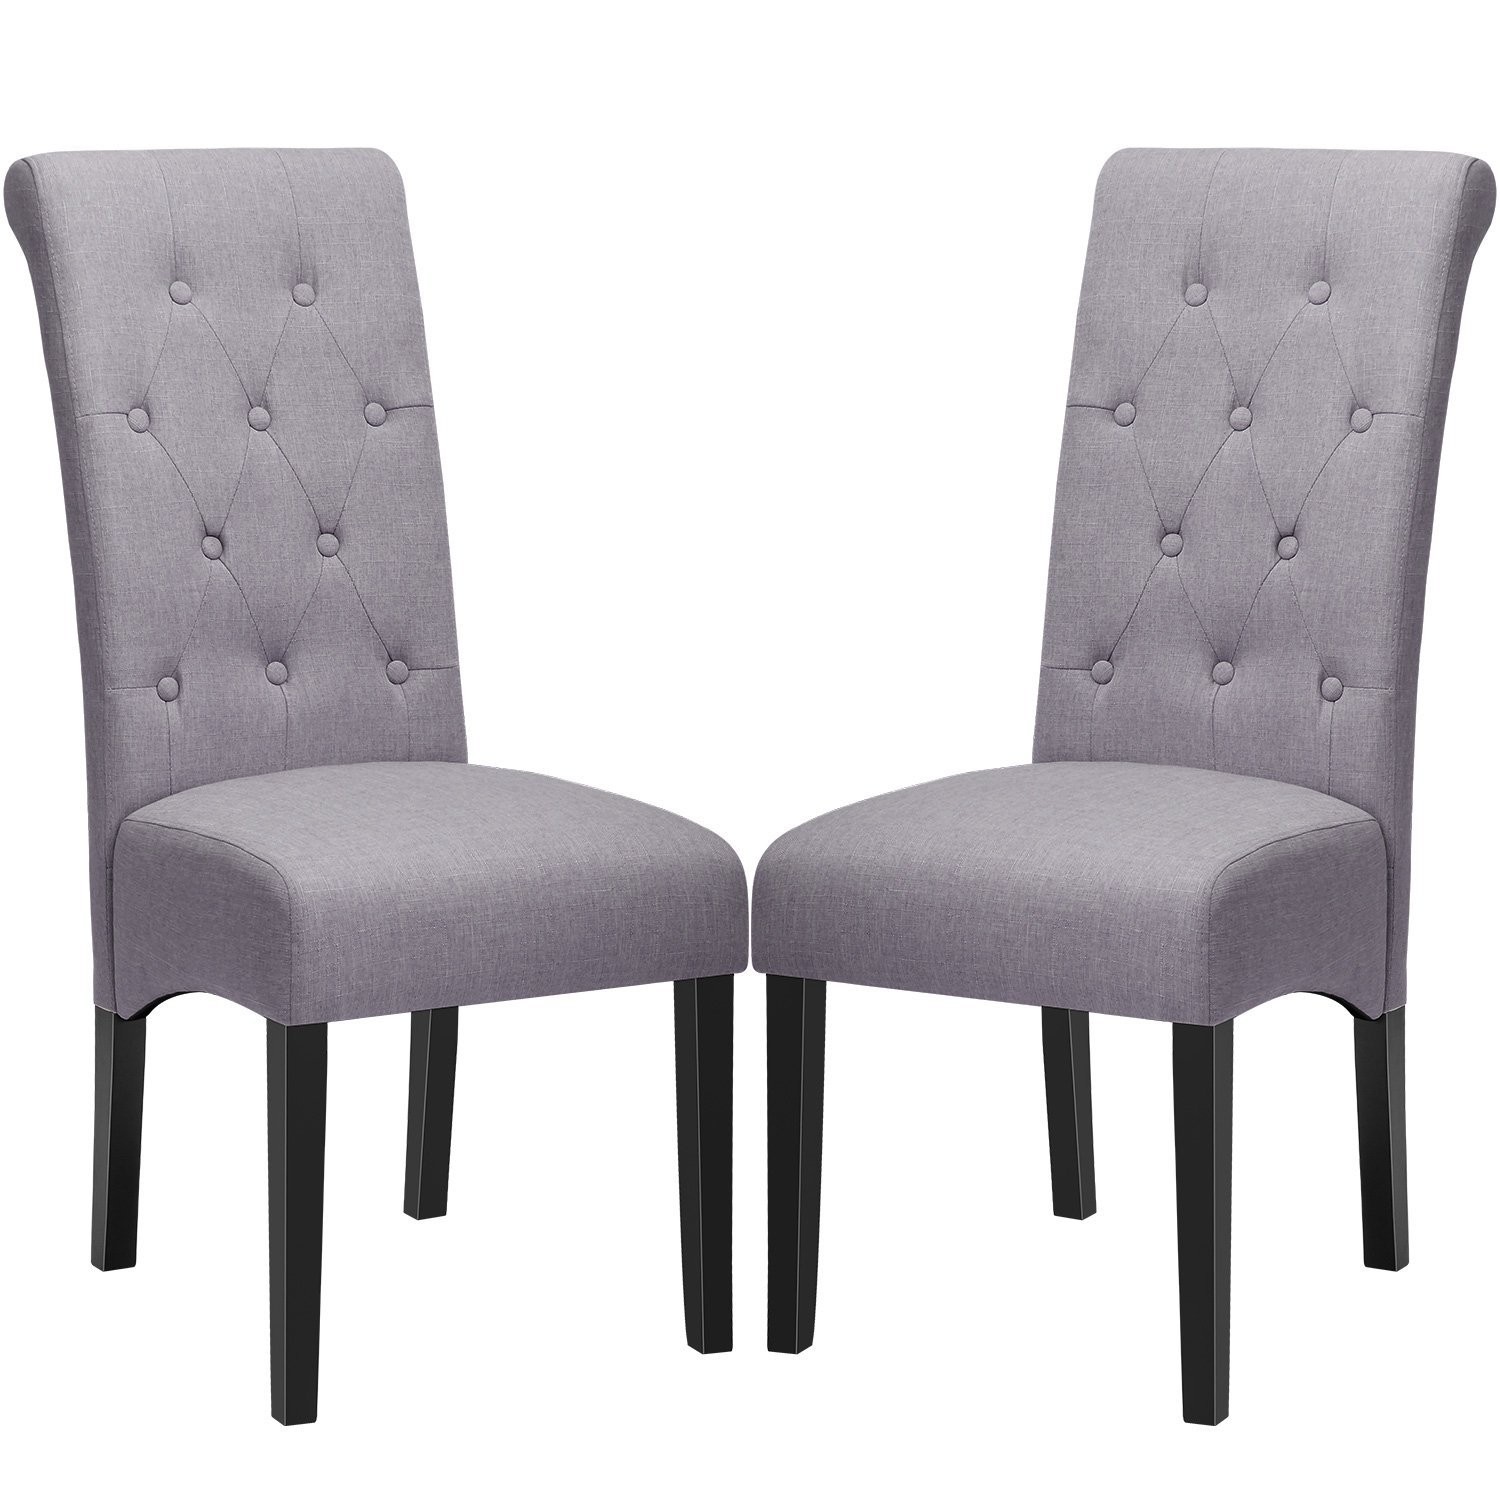 Dining Chairs Fabric Button Tufted Dining Chairs With Solid Wood Legs Set Of 2 Grey